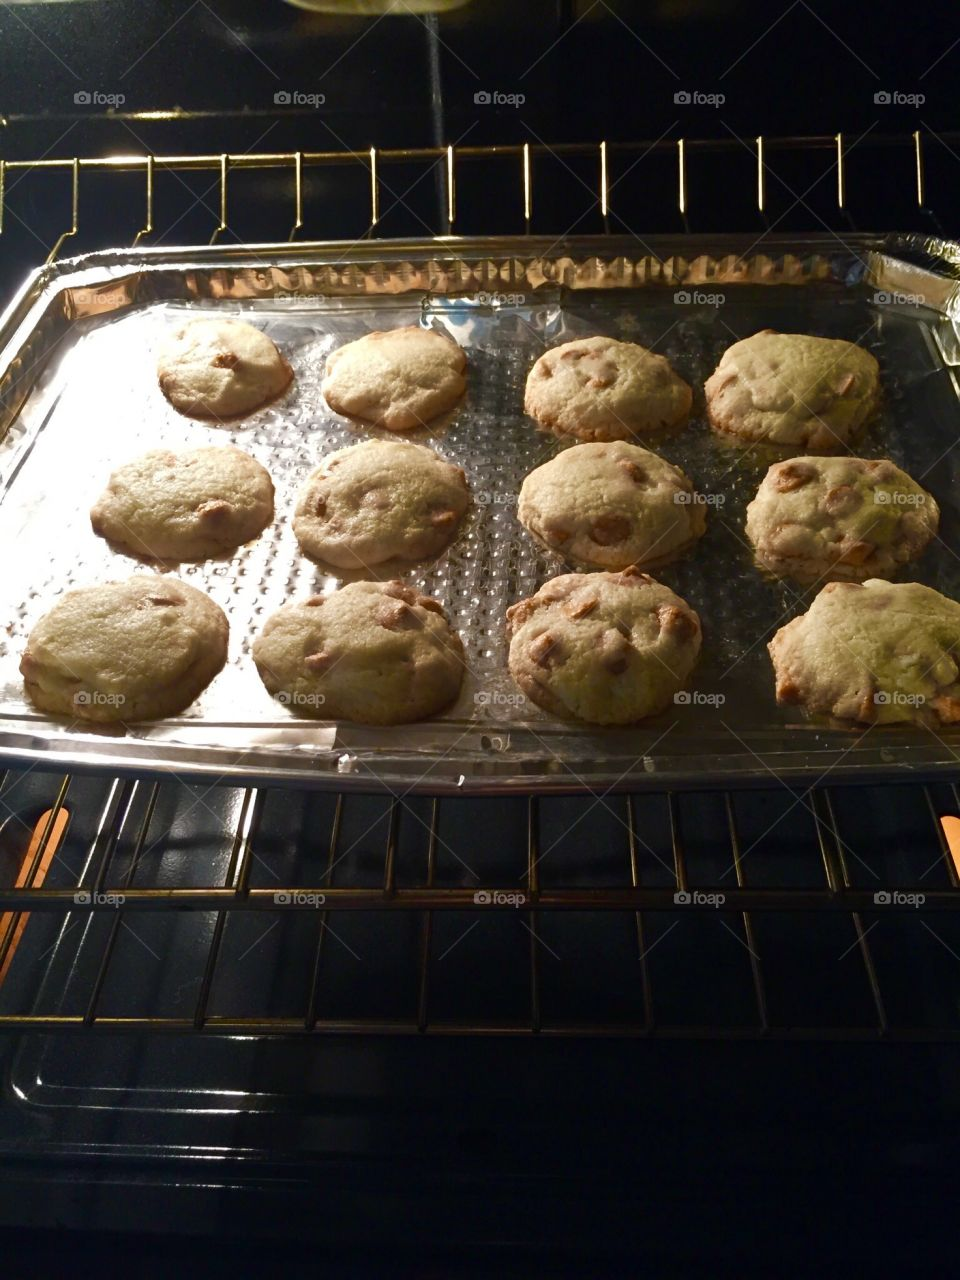 Smells so good in here, homemade butterscotch cookies